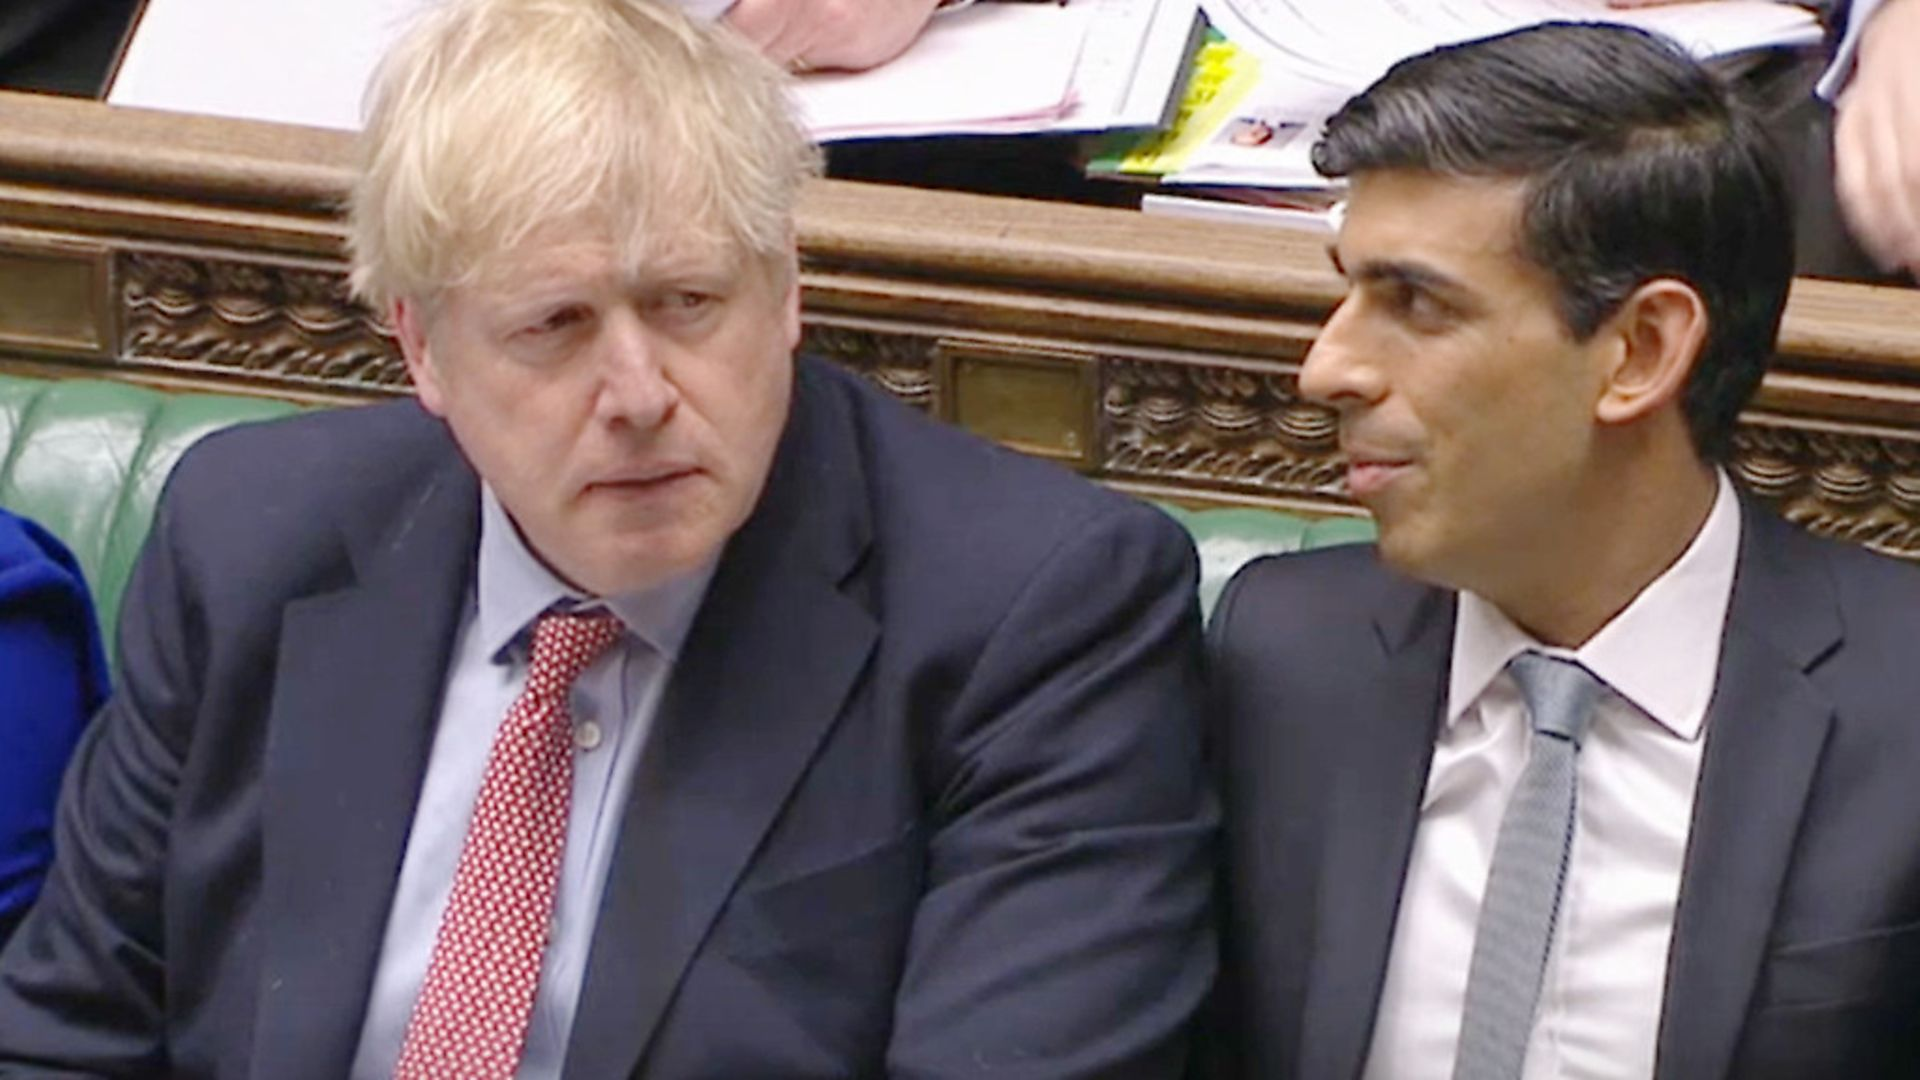 Prime Minister Boris Johnson (left) alongside Chancellor Rishi Sunak during Prime Minister's Questions in the House of Commons. Photograph: House of Commons/PA Wire. - Credit: PA